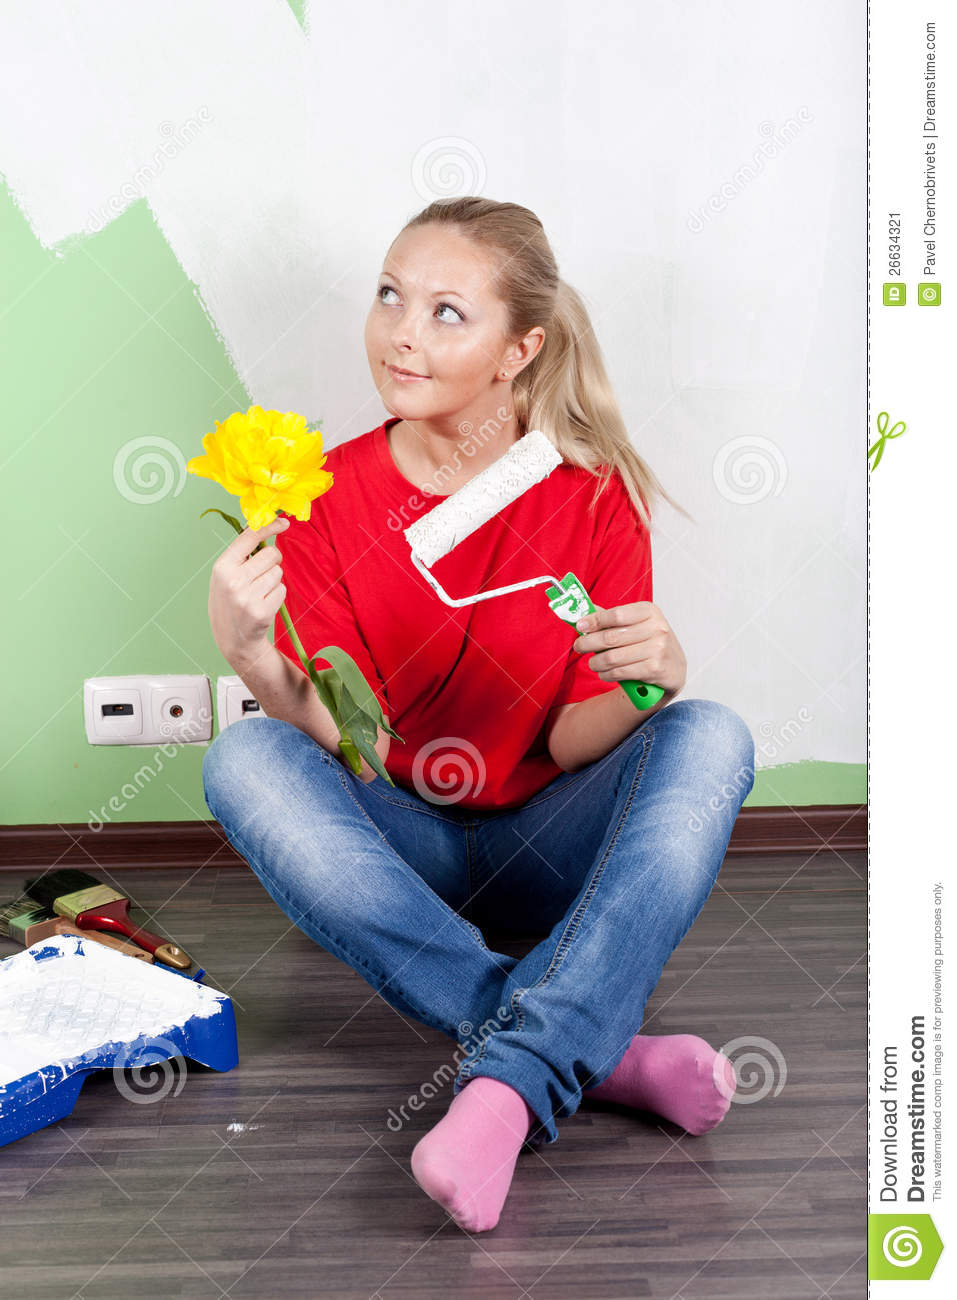 Young Woman With Painting Smiling Portrait High-Res Stock